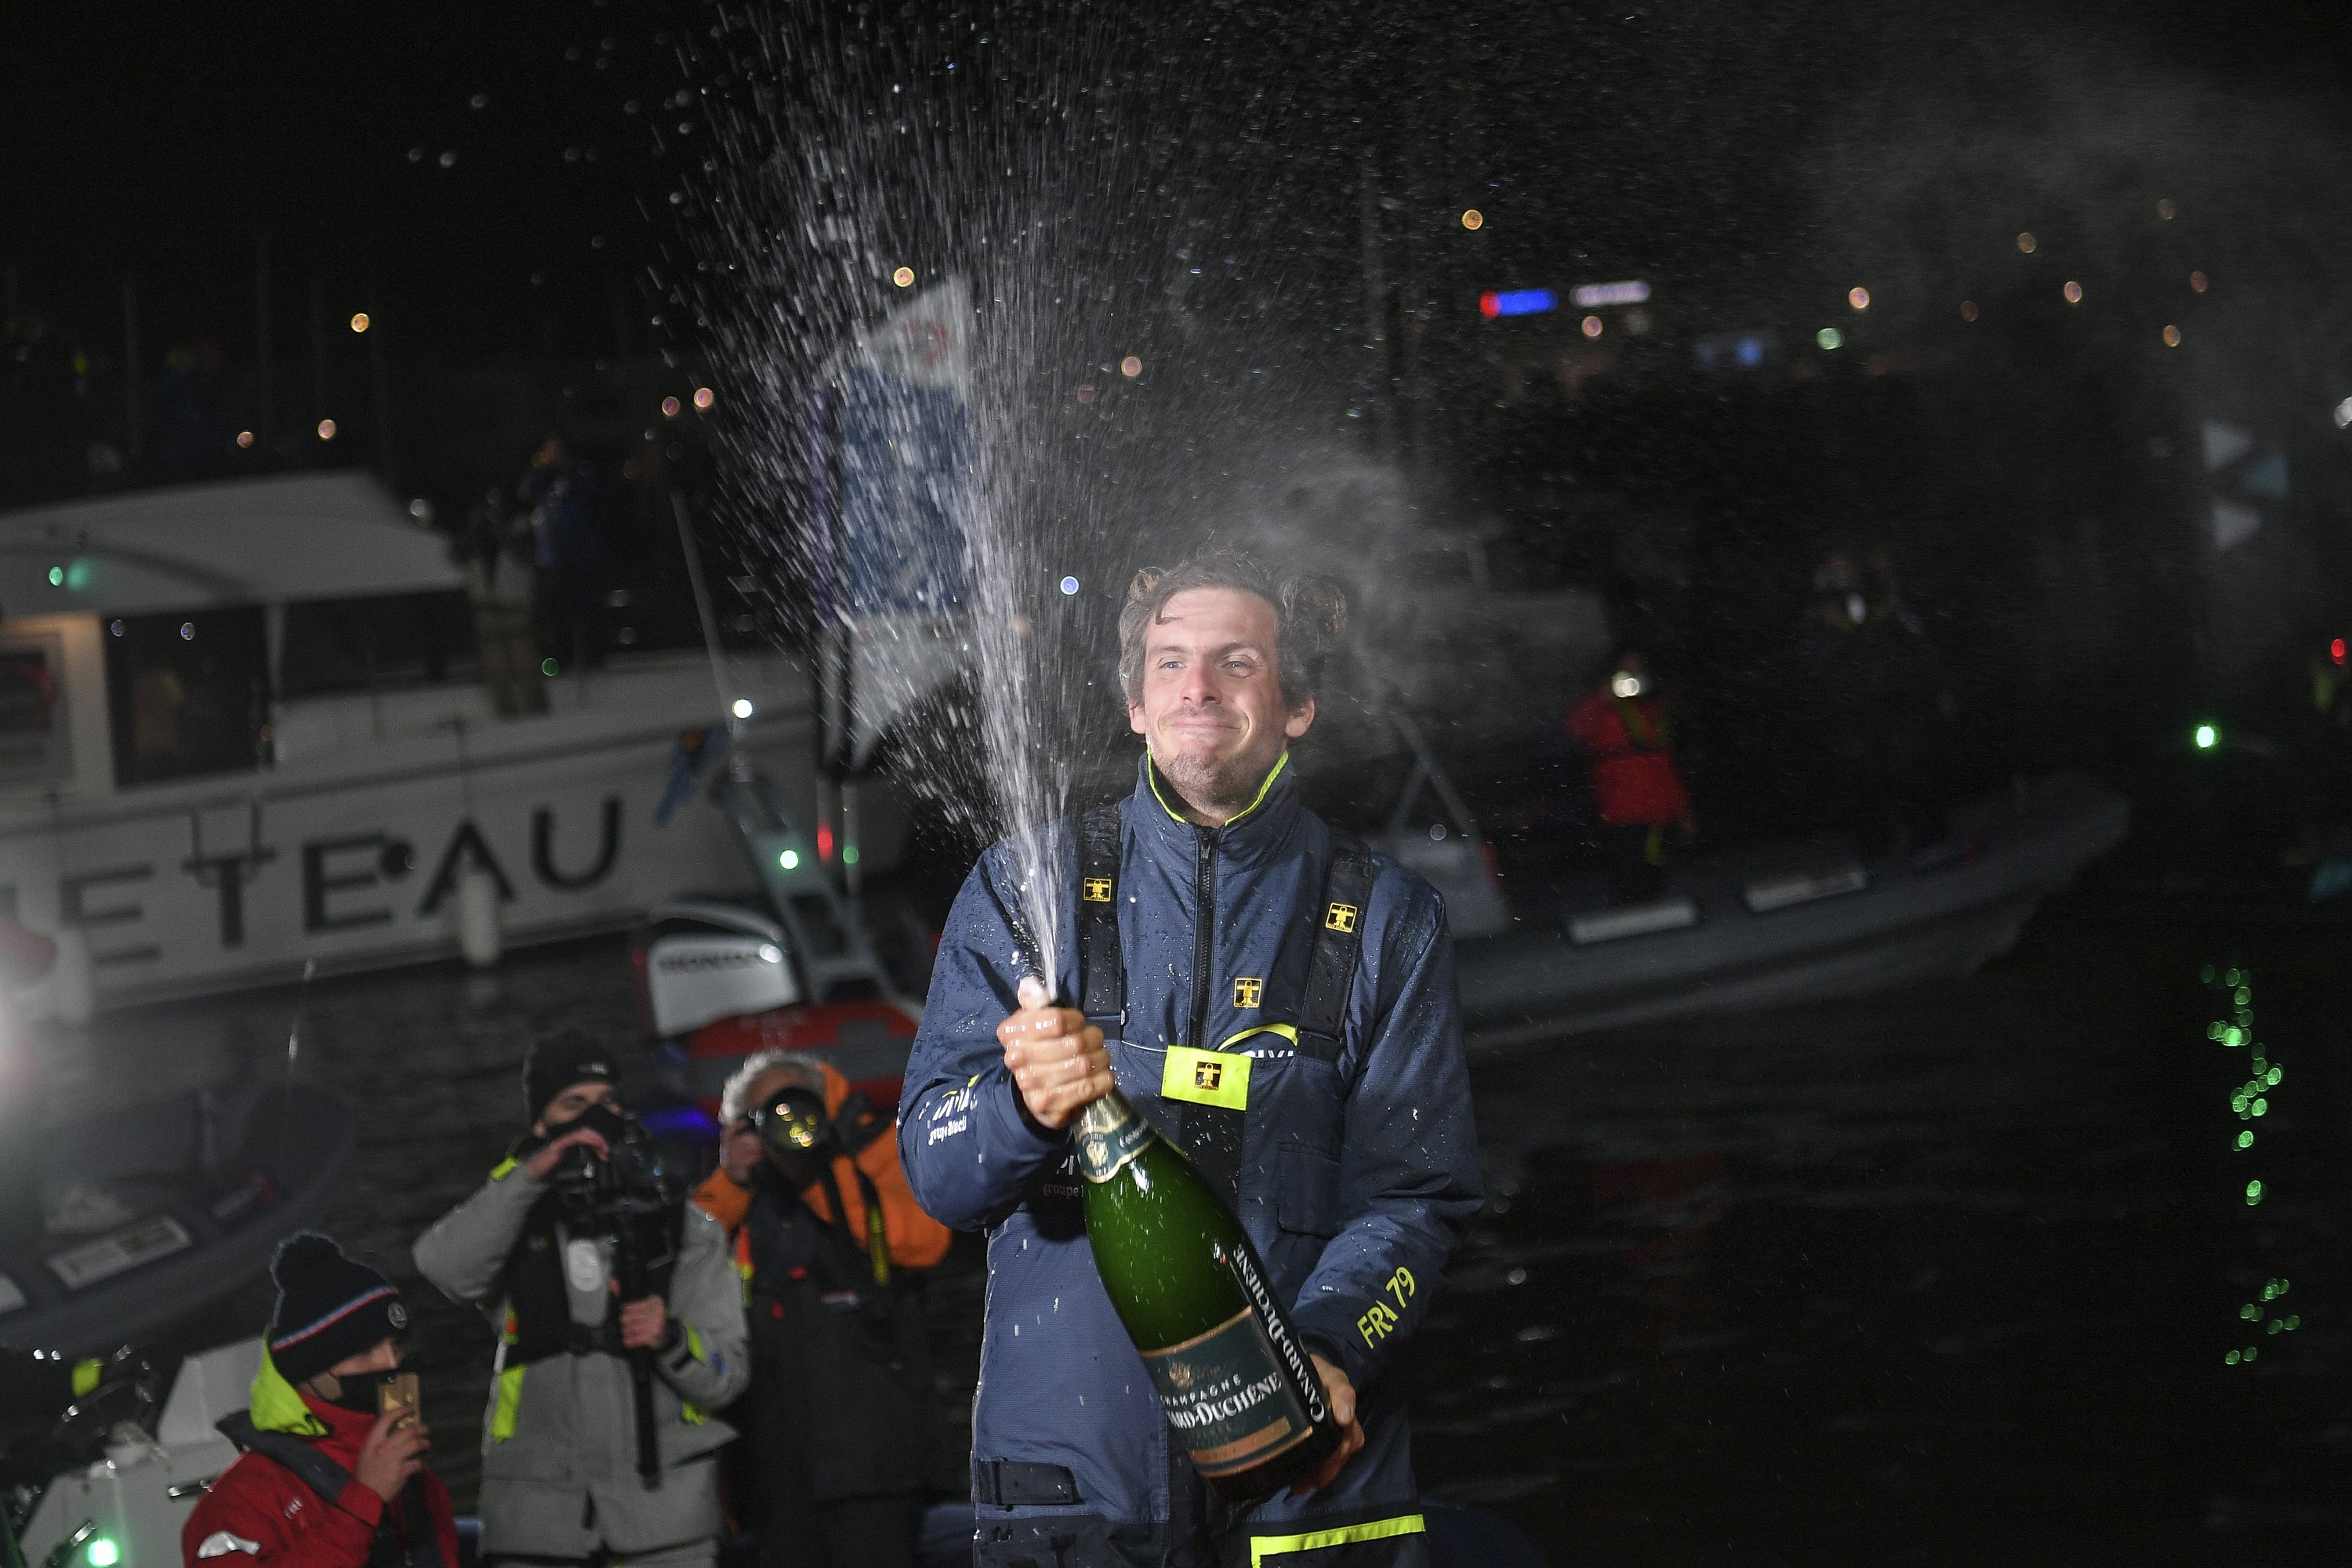 Dalin crosses line 1st in Vendee Globe yet unsure of victory